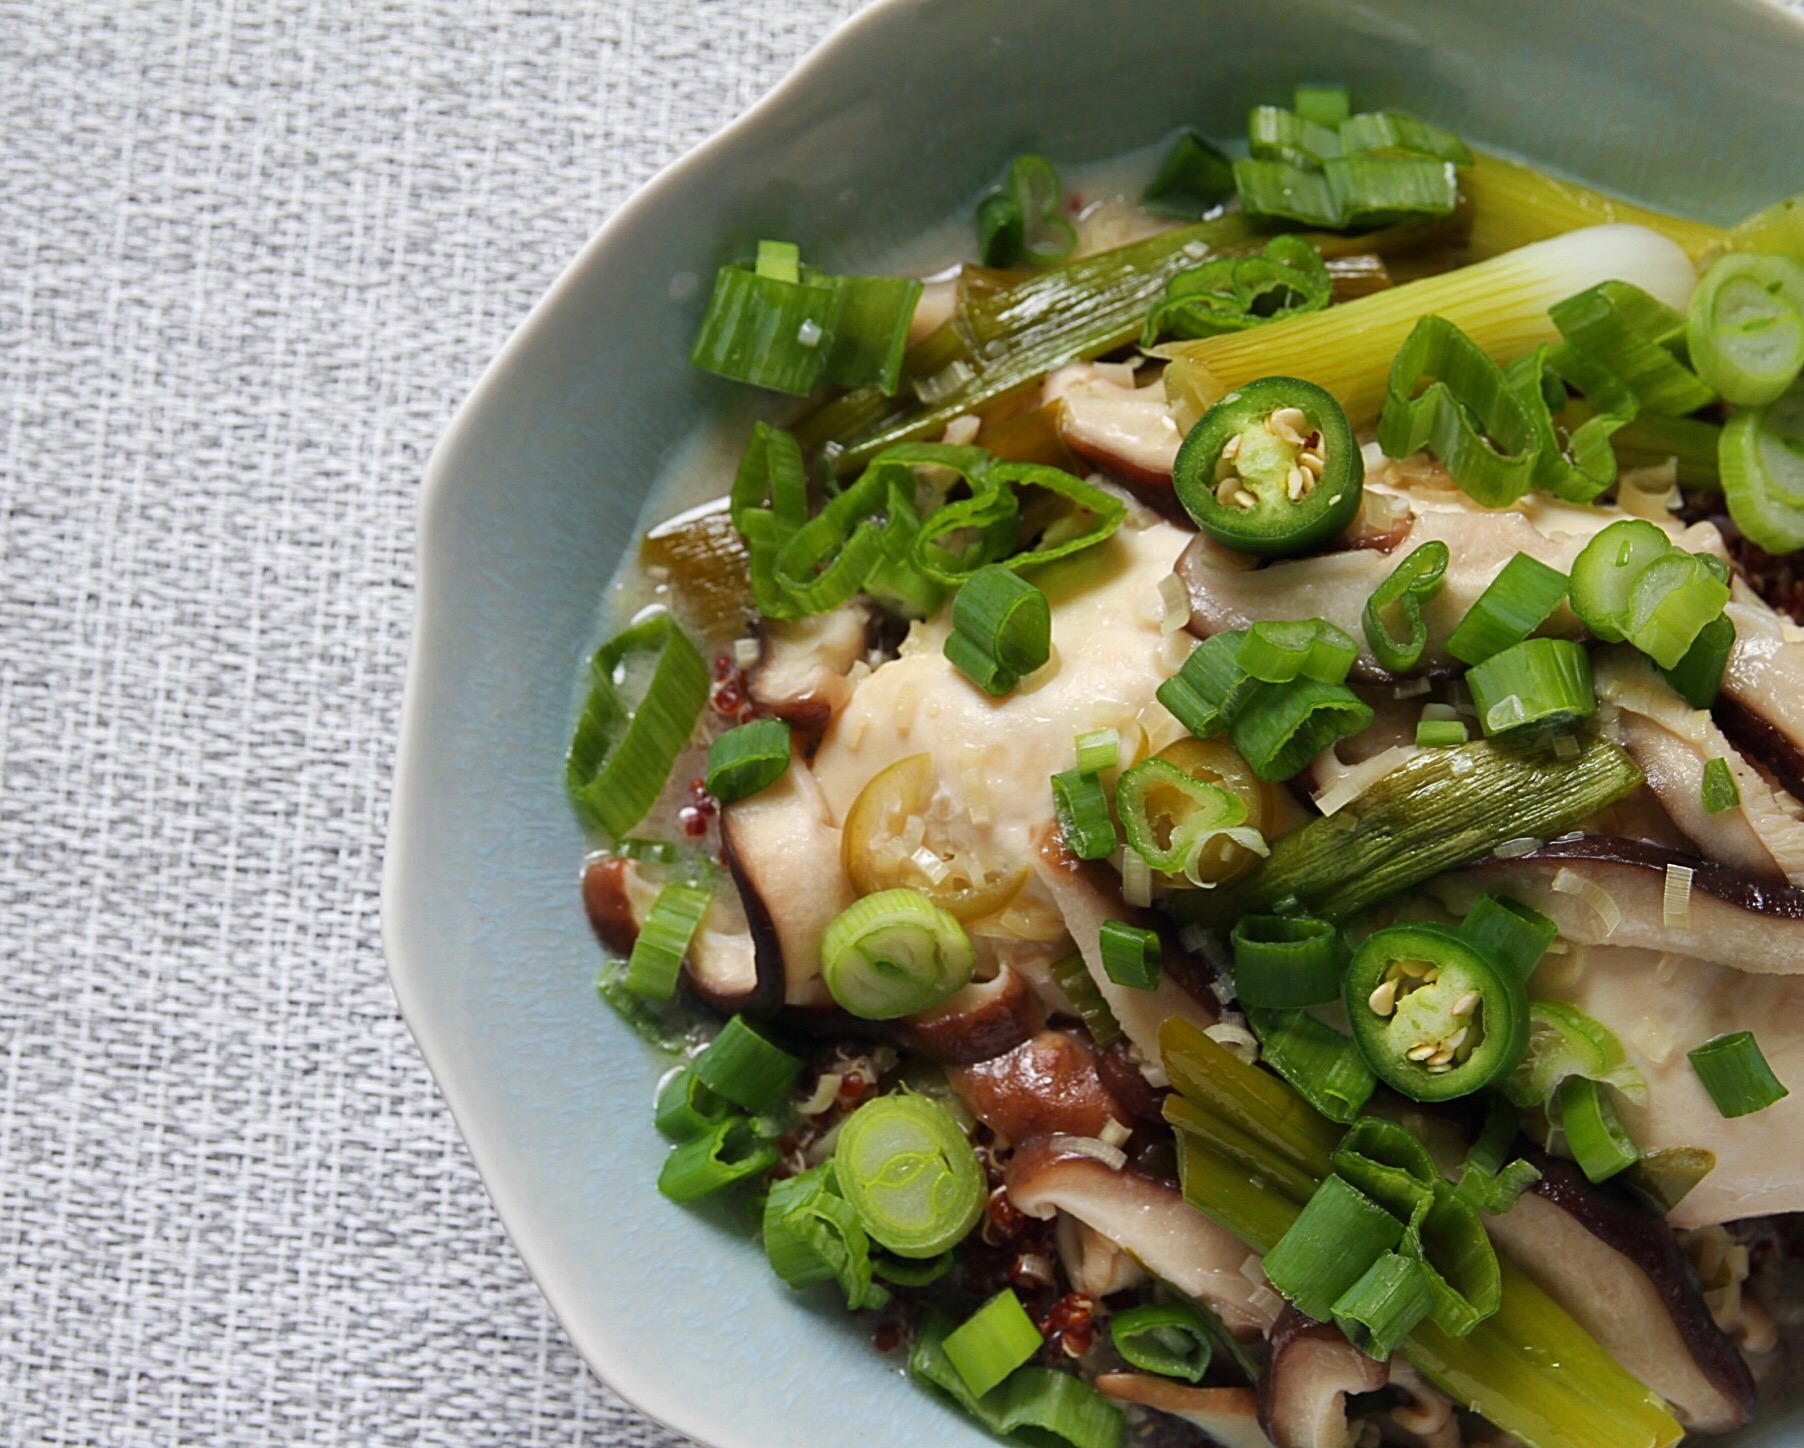 Thai chicken with coconut milk and lemongrass.